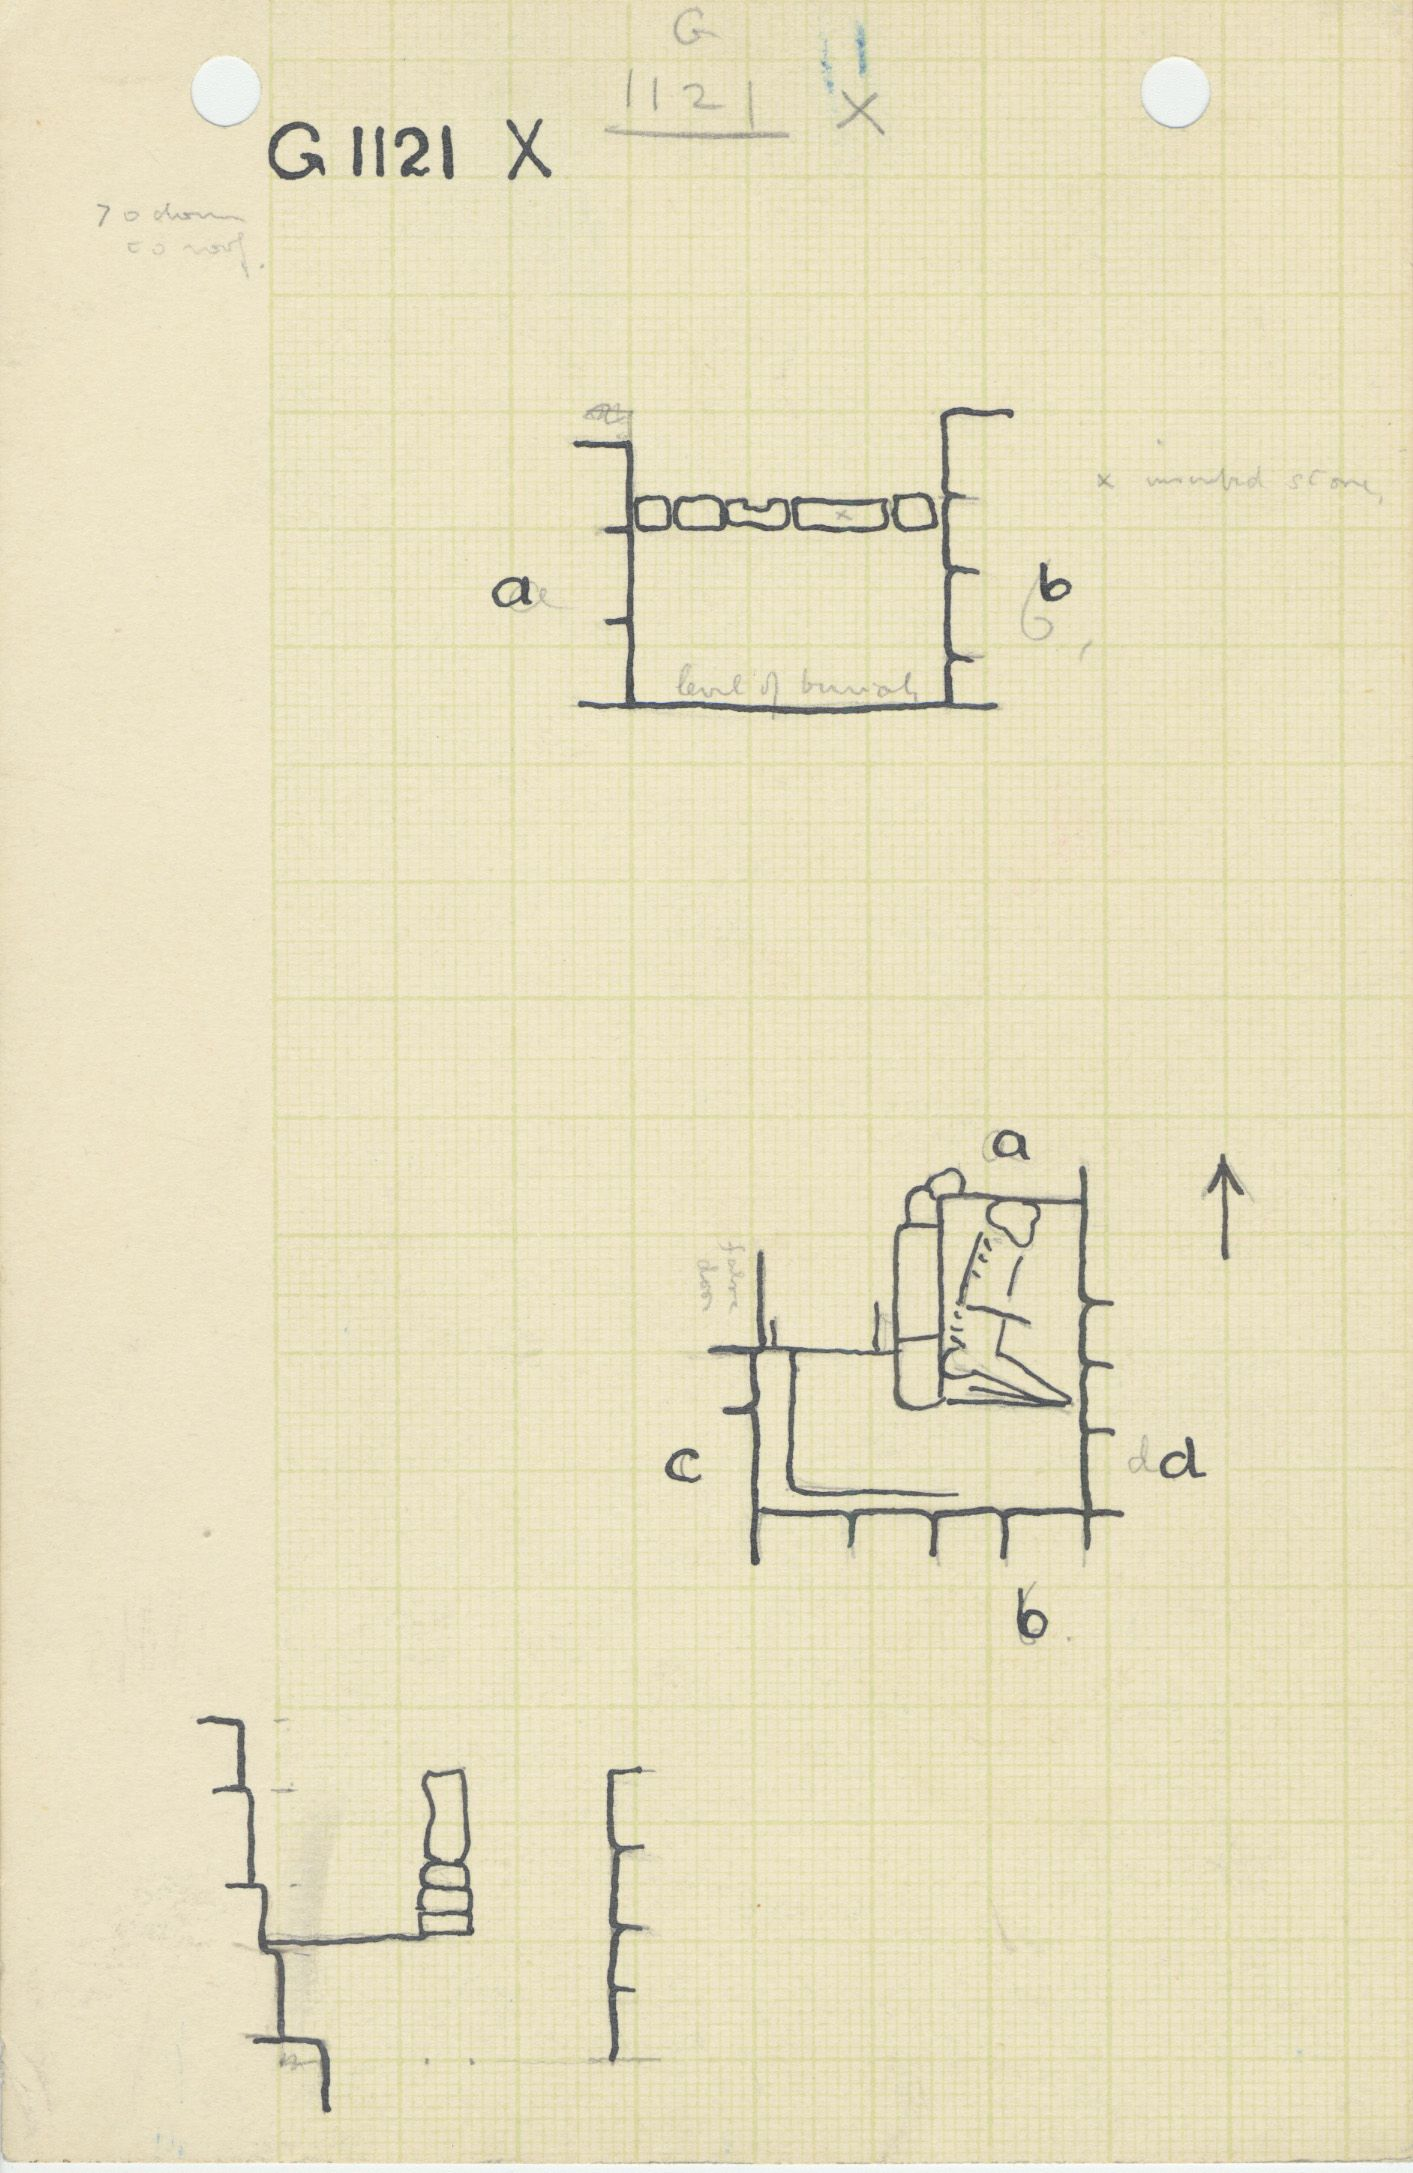 Maps and plans: G 1121, Shaft X